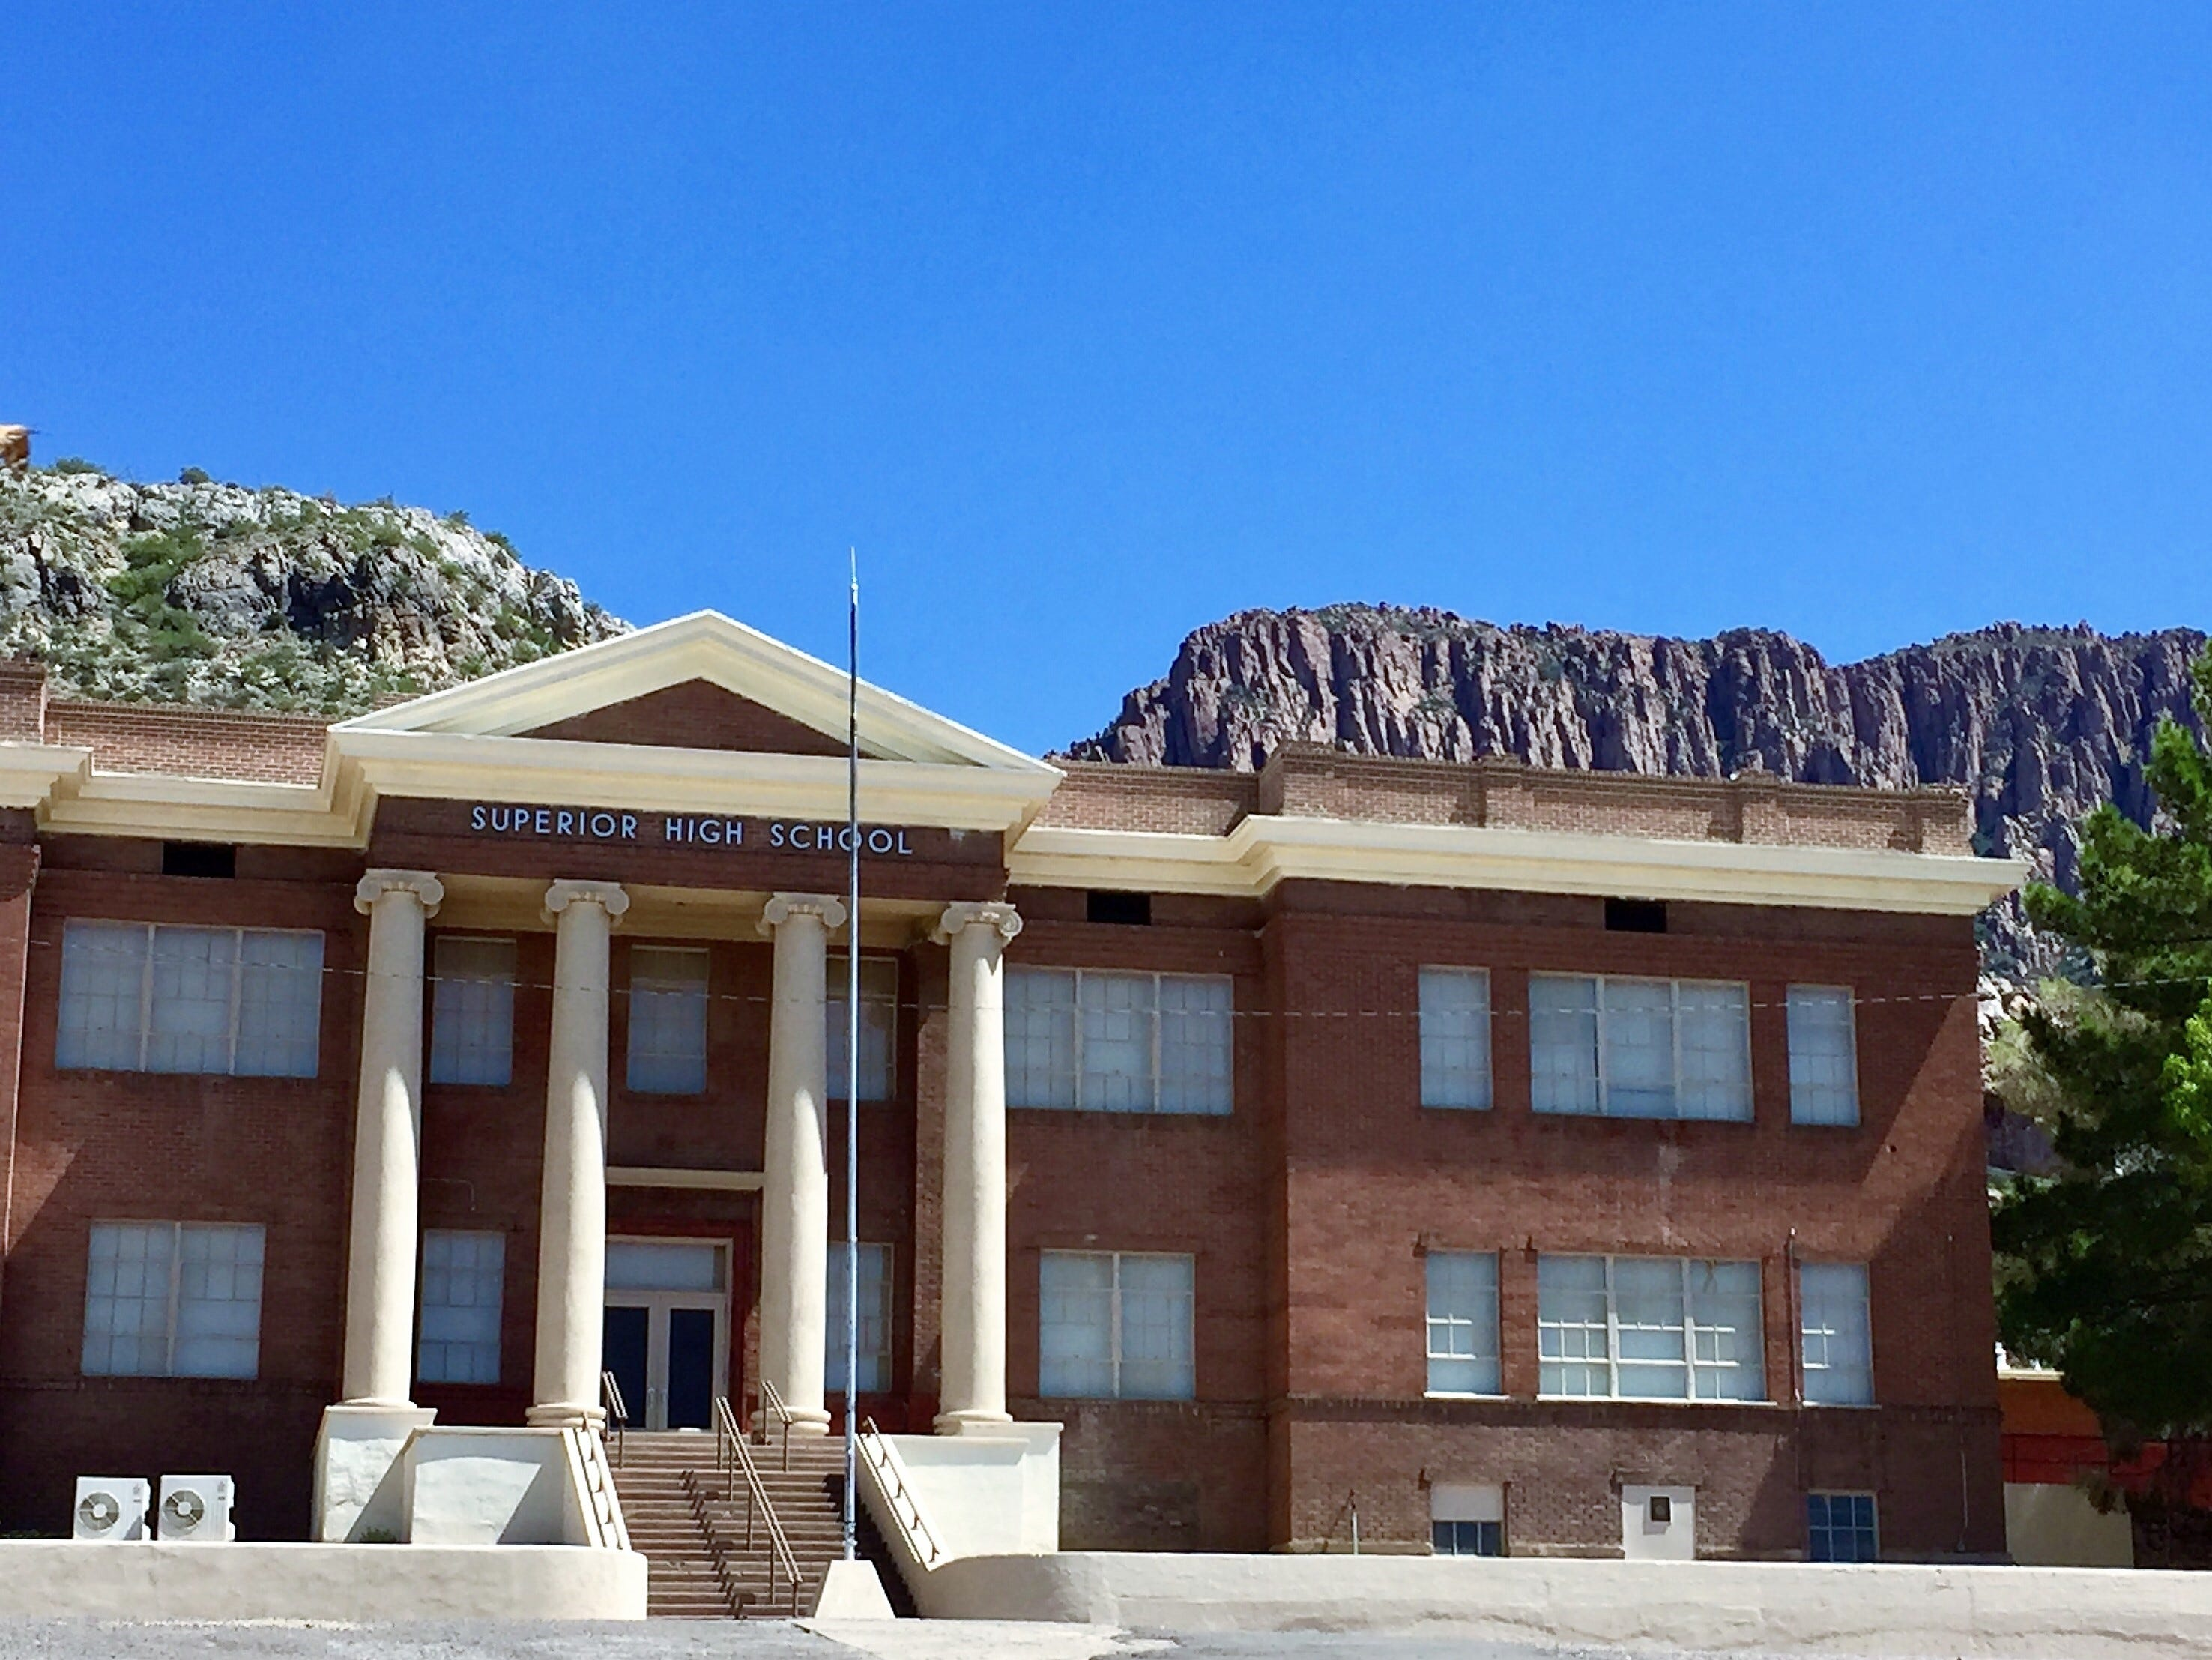 The former Superior High School has been converted into a home.